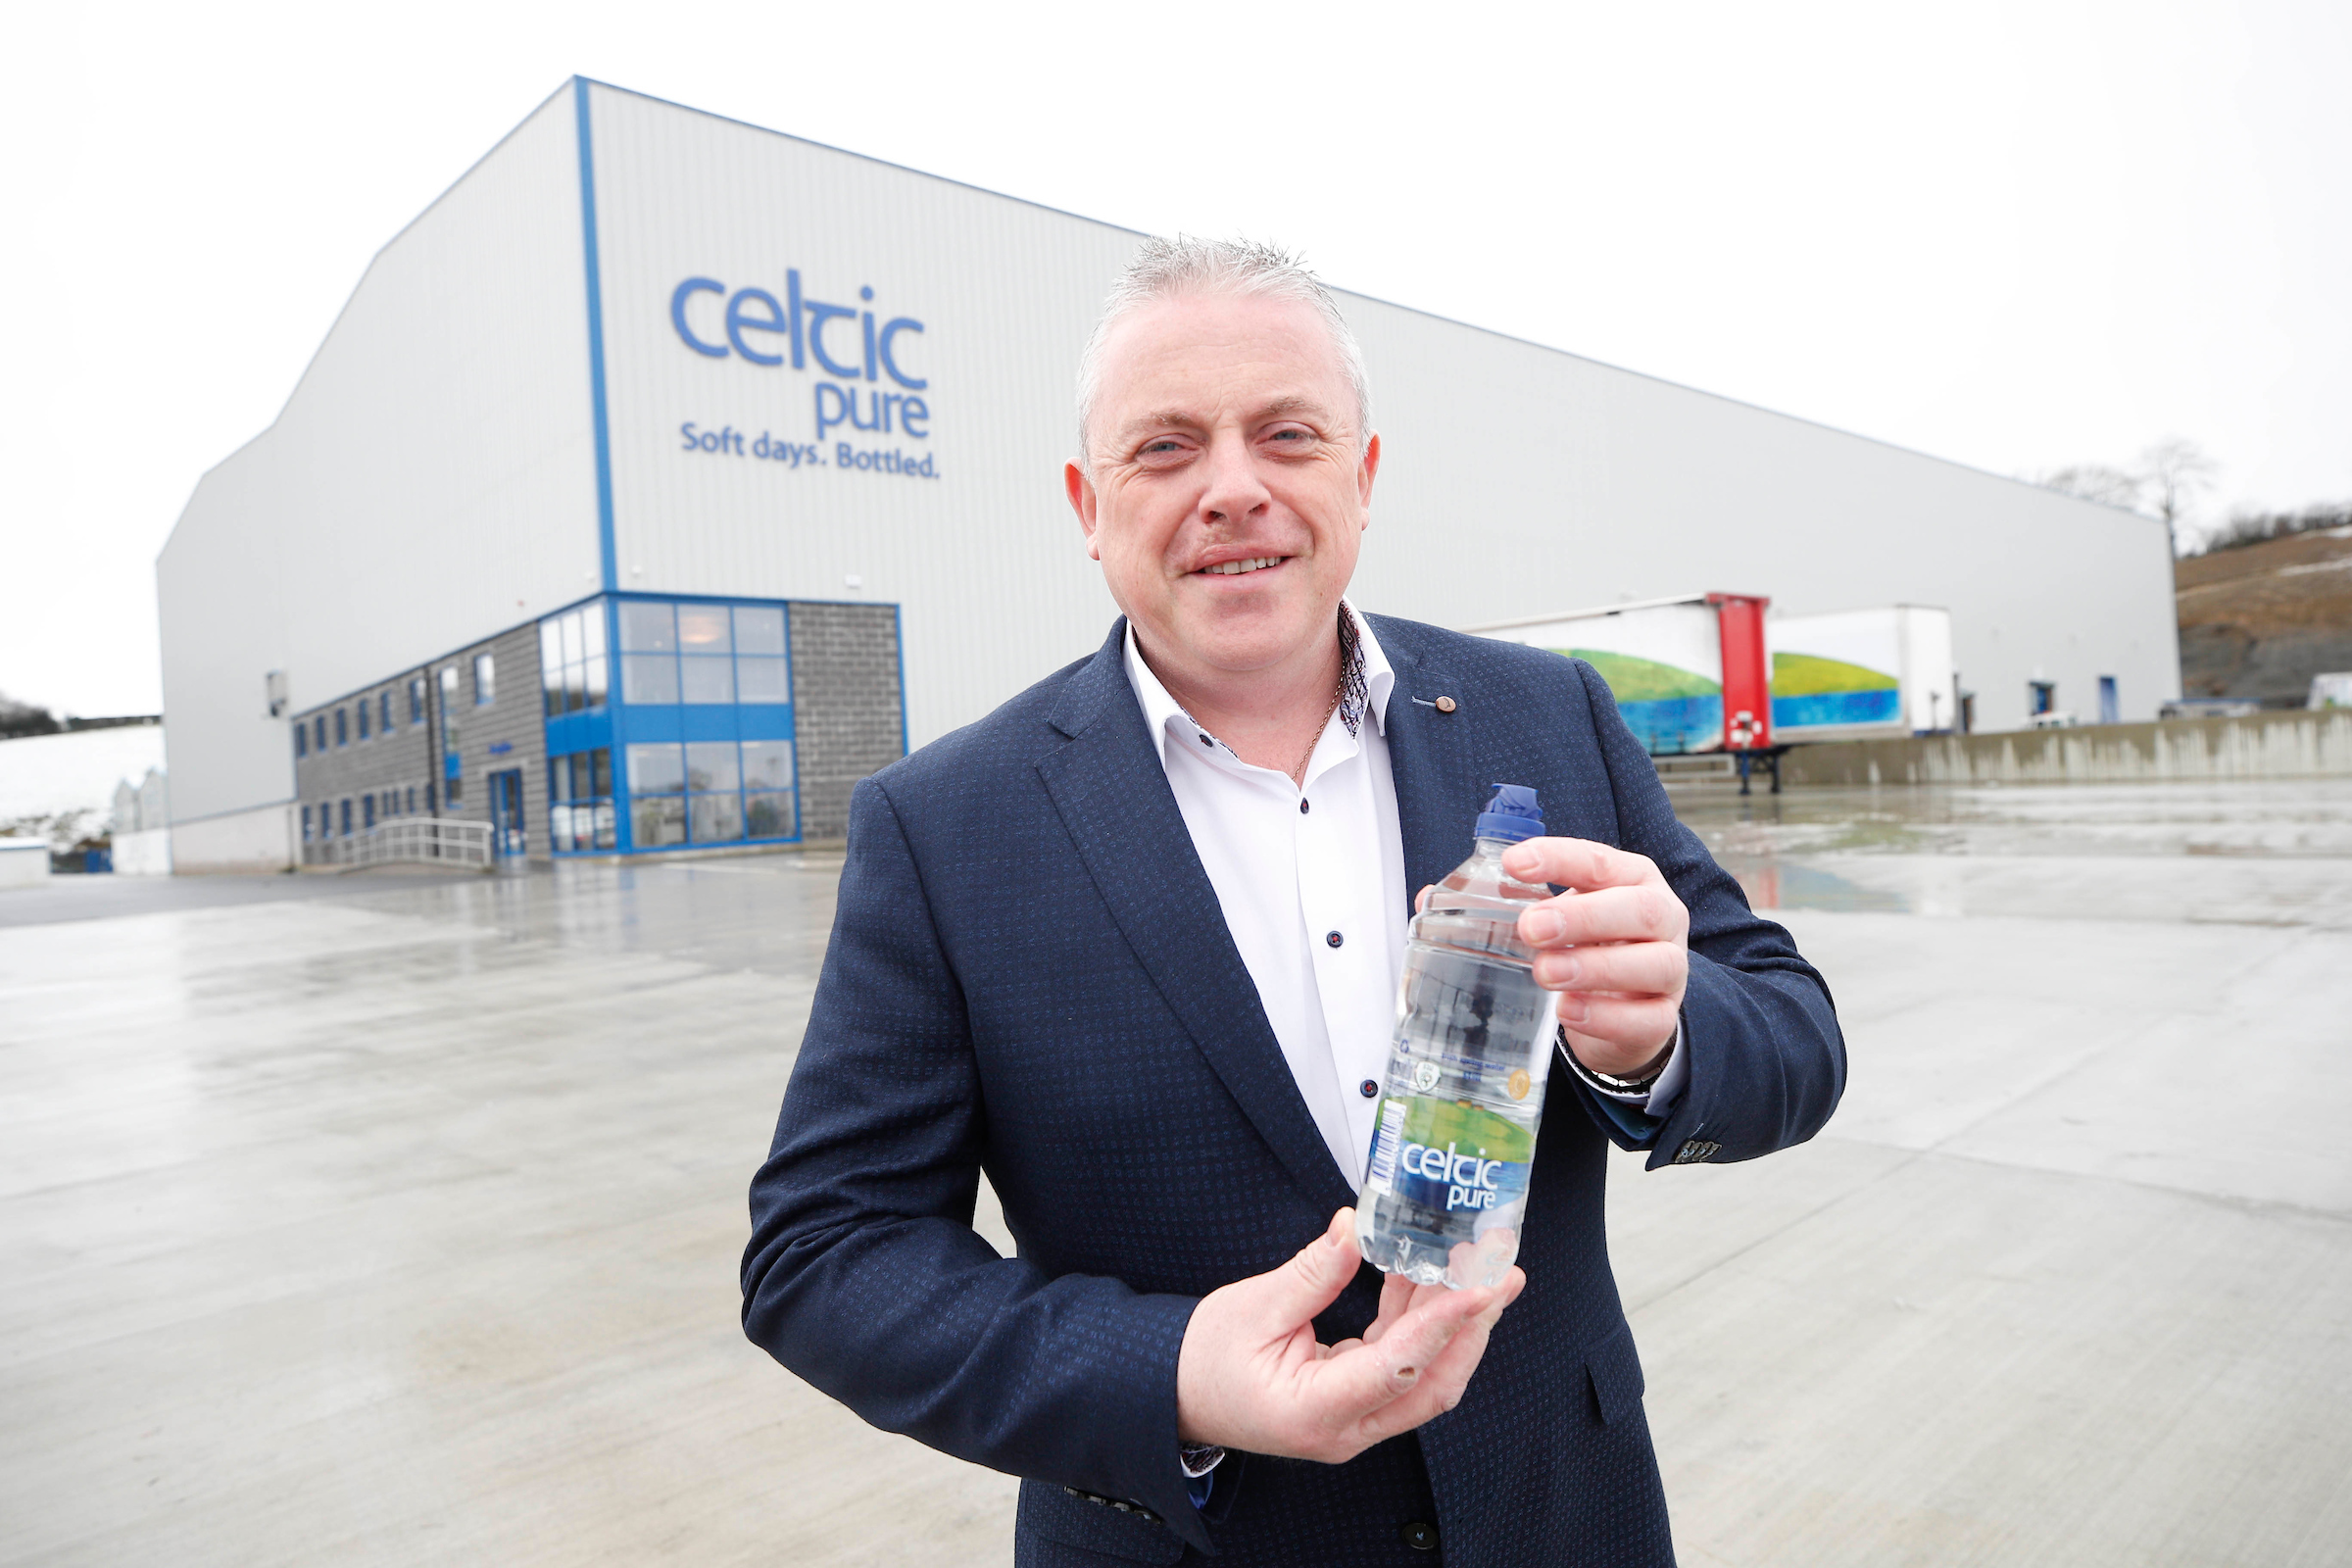 Sidel PET complete line revolutionizing Celtic Pure Water